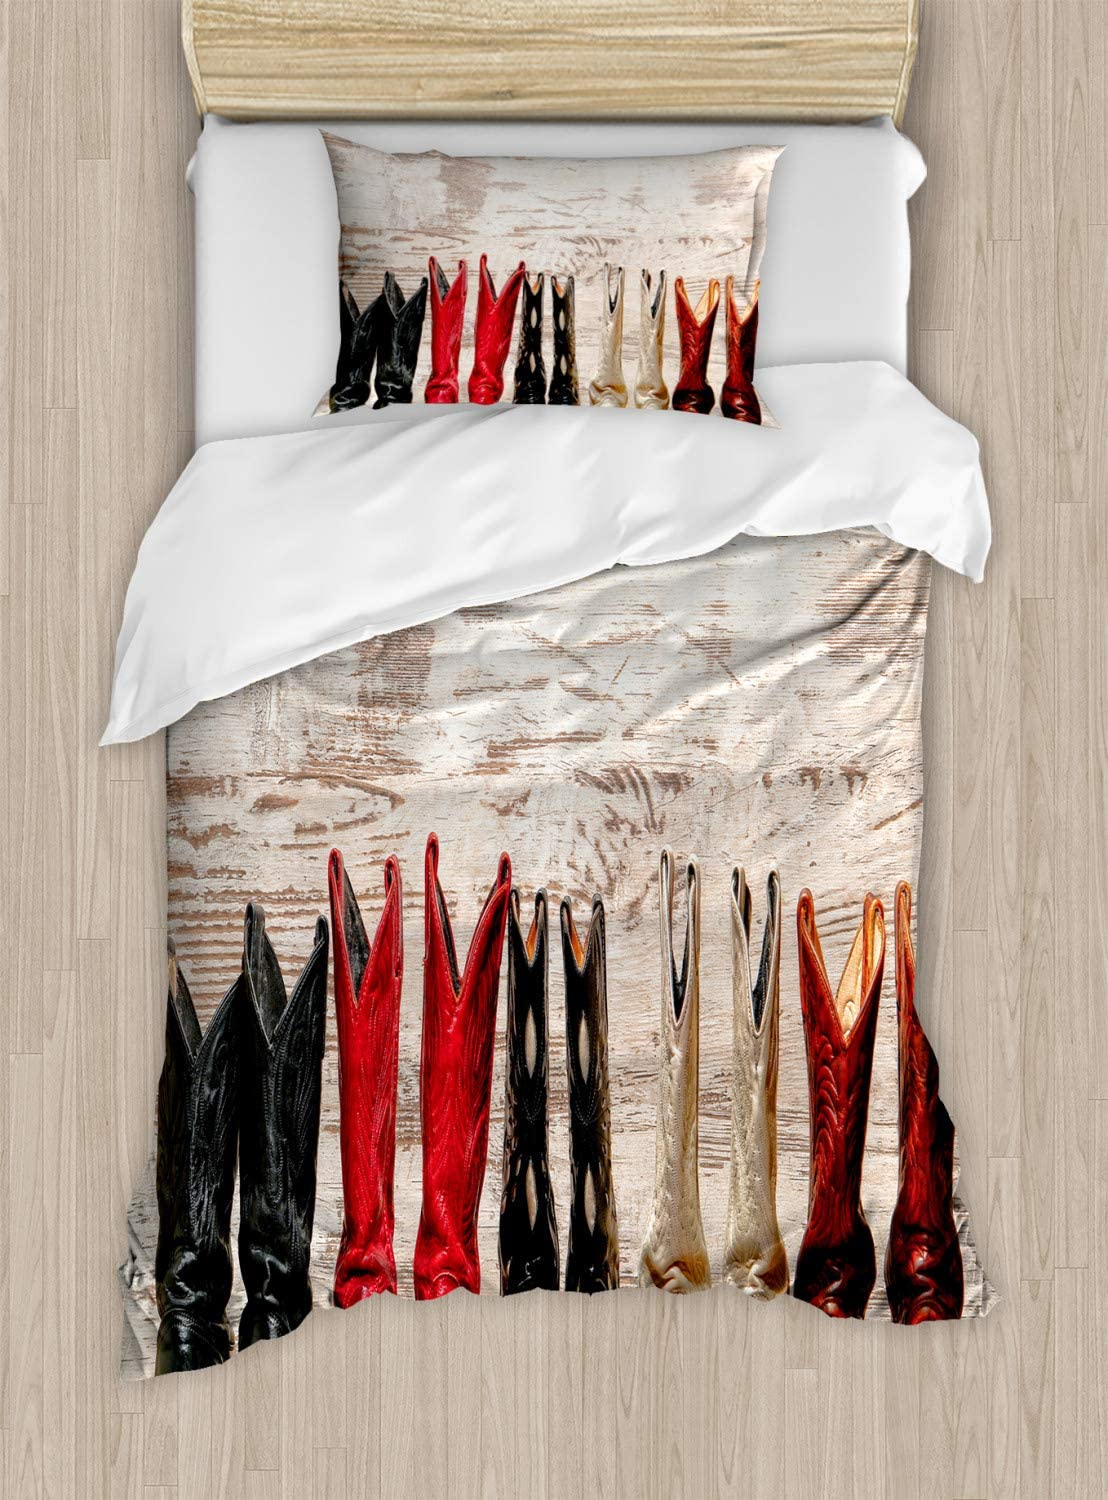 Ambesonne Western Duvet Cover Set, American Cowgirl Leather Boots Rustic Wild West Theme Cultural Print, Decorative 2 Piece Bedding Set with 1 Pillow Sham, Twin Size, Beige Red